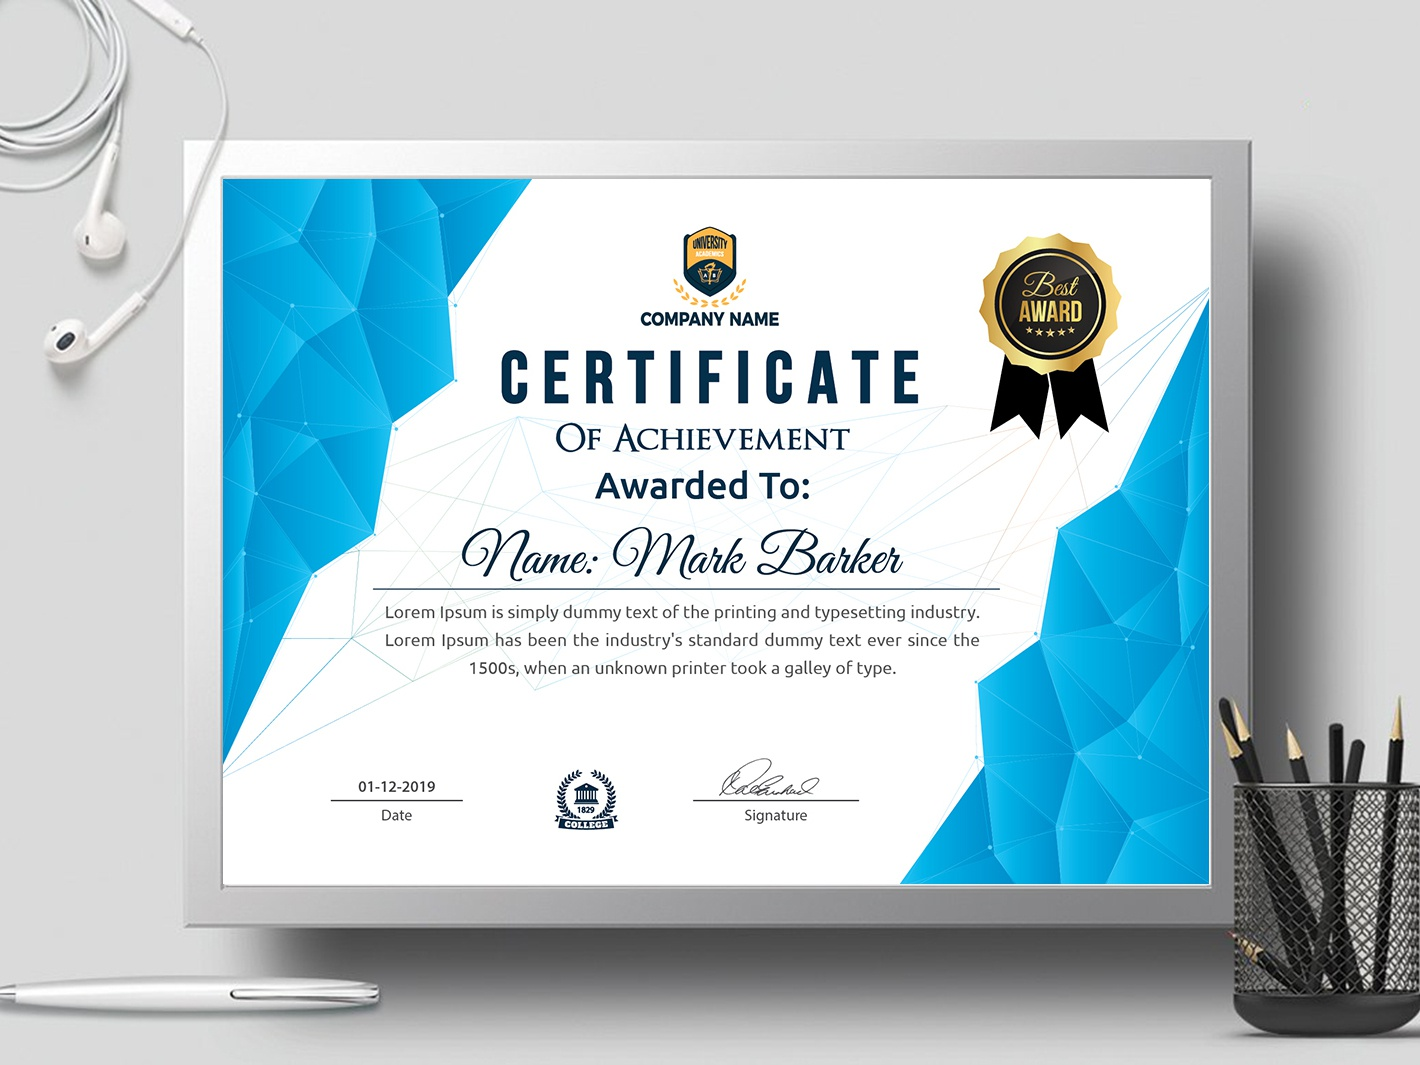 Certificate Template by Creative Touch on Dribbble